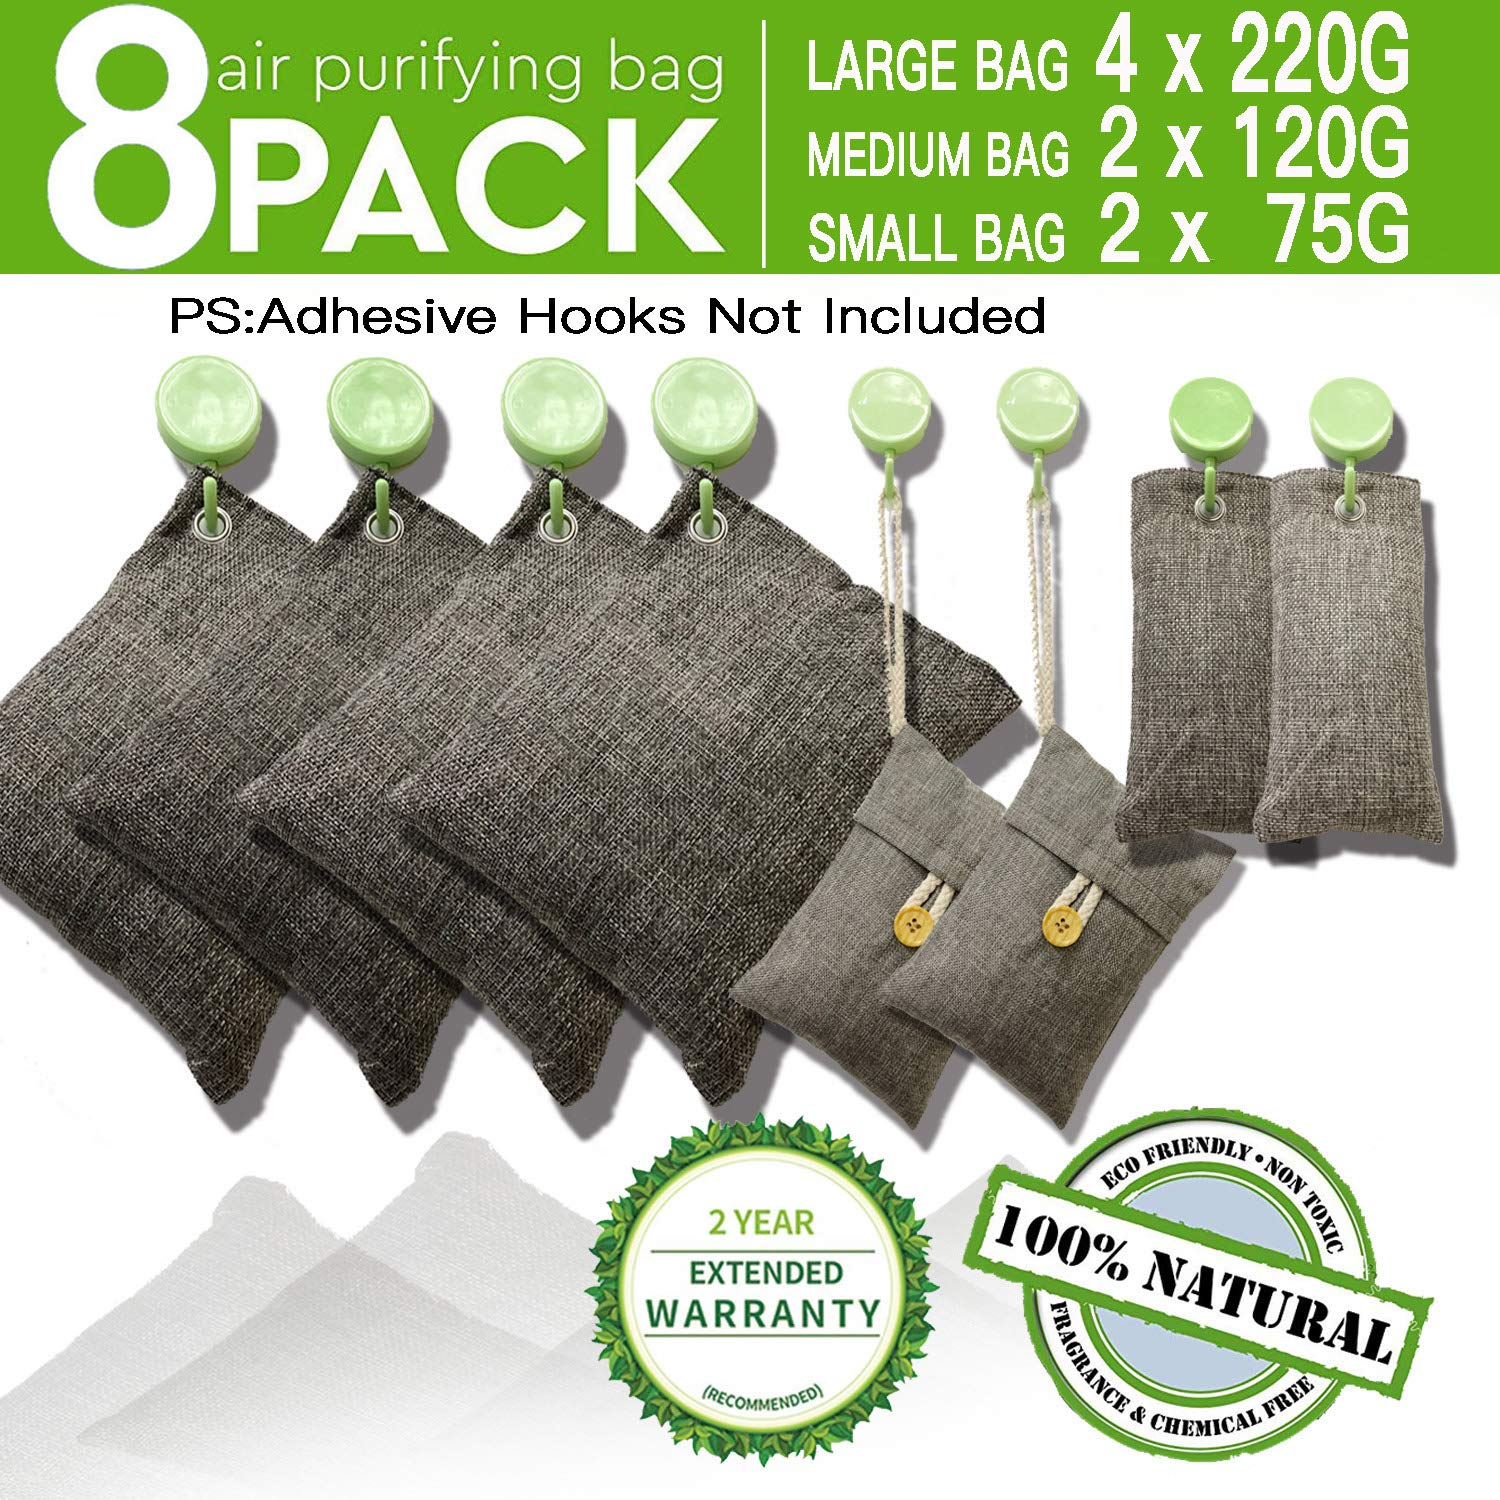 DTXDTech Bamboo Charcoal Air Purifying Bags 8 Pack 4X220g 2X120g 2X75g Car,Closet,Shoes Activated Charcoal Air Filter Natural Eco Friendly Moisture Absorber for Home